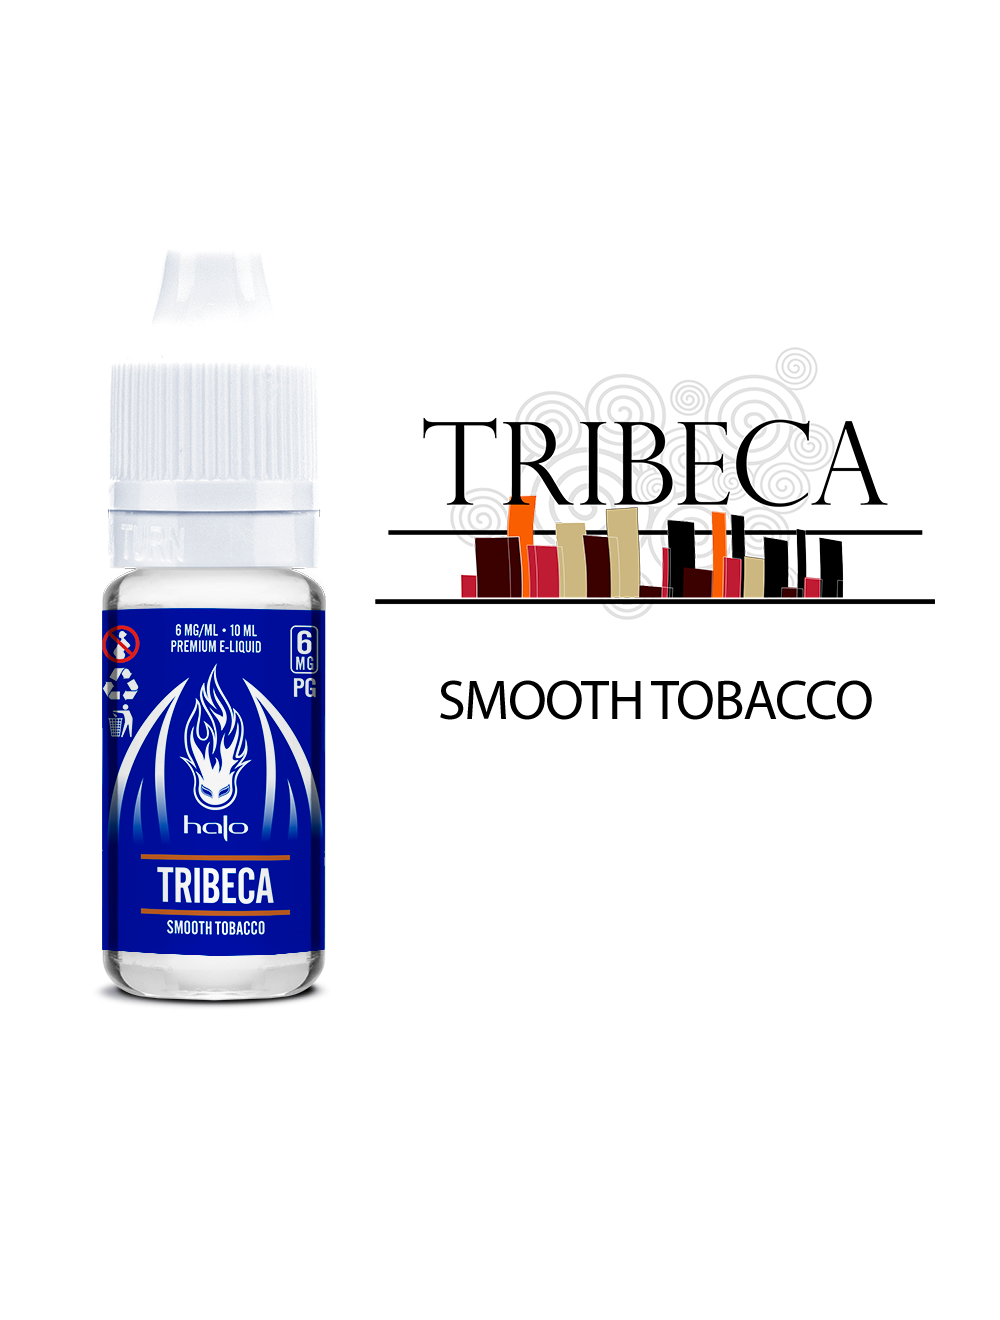 HALO Tribeca Blue Series 50ml Smooth Tobacco